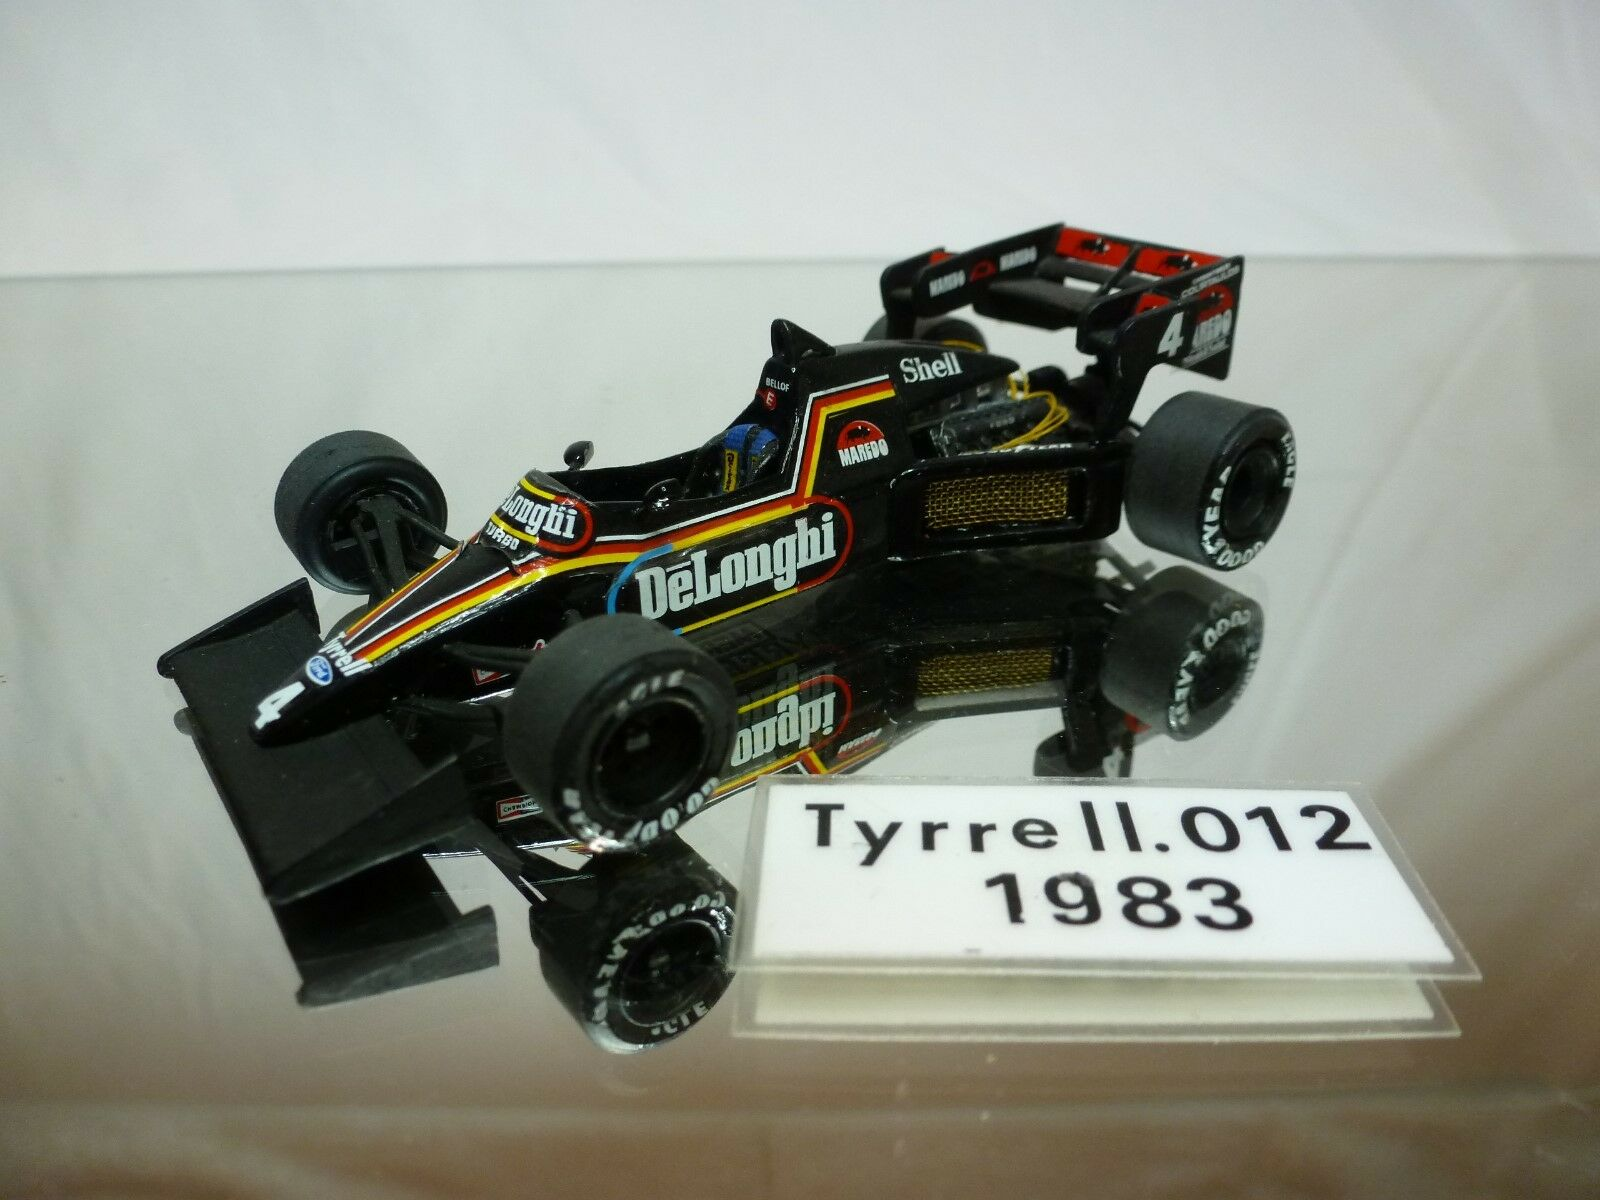 MERIKITS - TYRRELL 012 1983  - VERY RARE -  KIT (built)  F1 1 43 - NICE CONDITION  promotions d'équipe